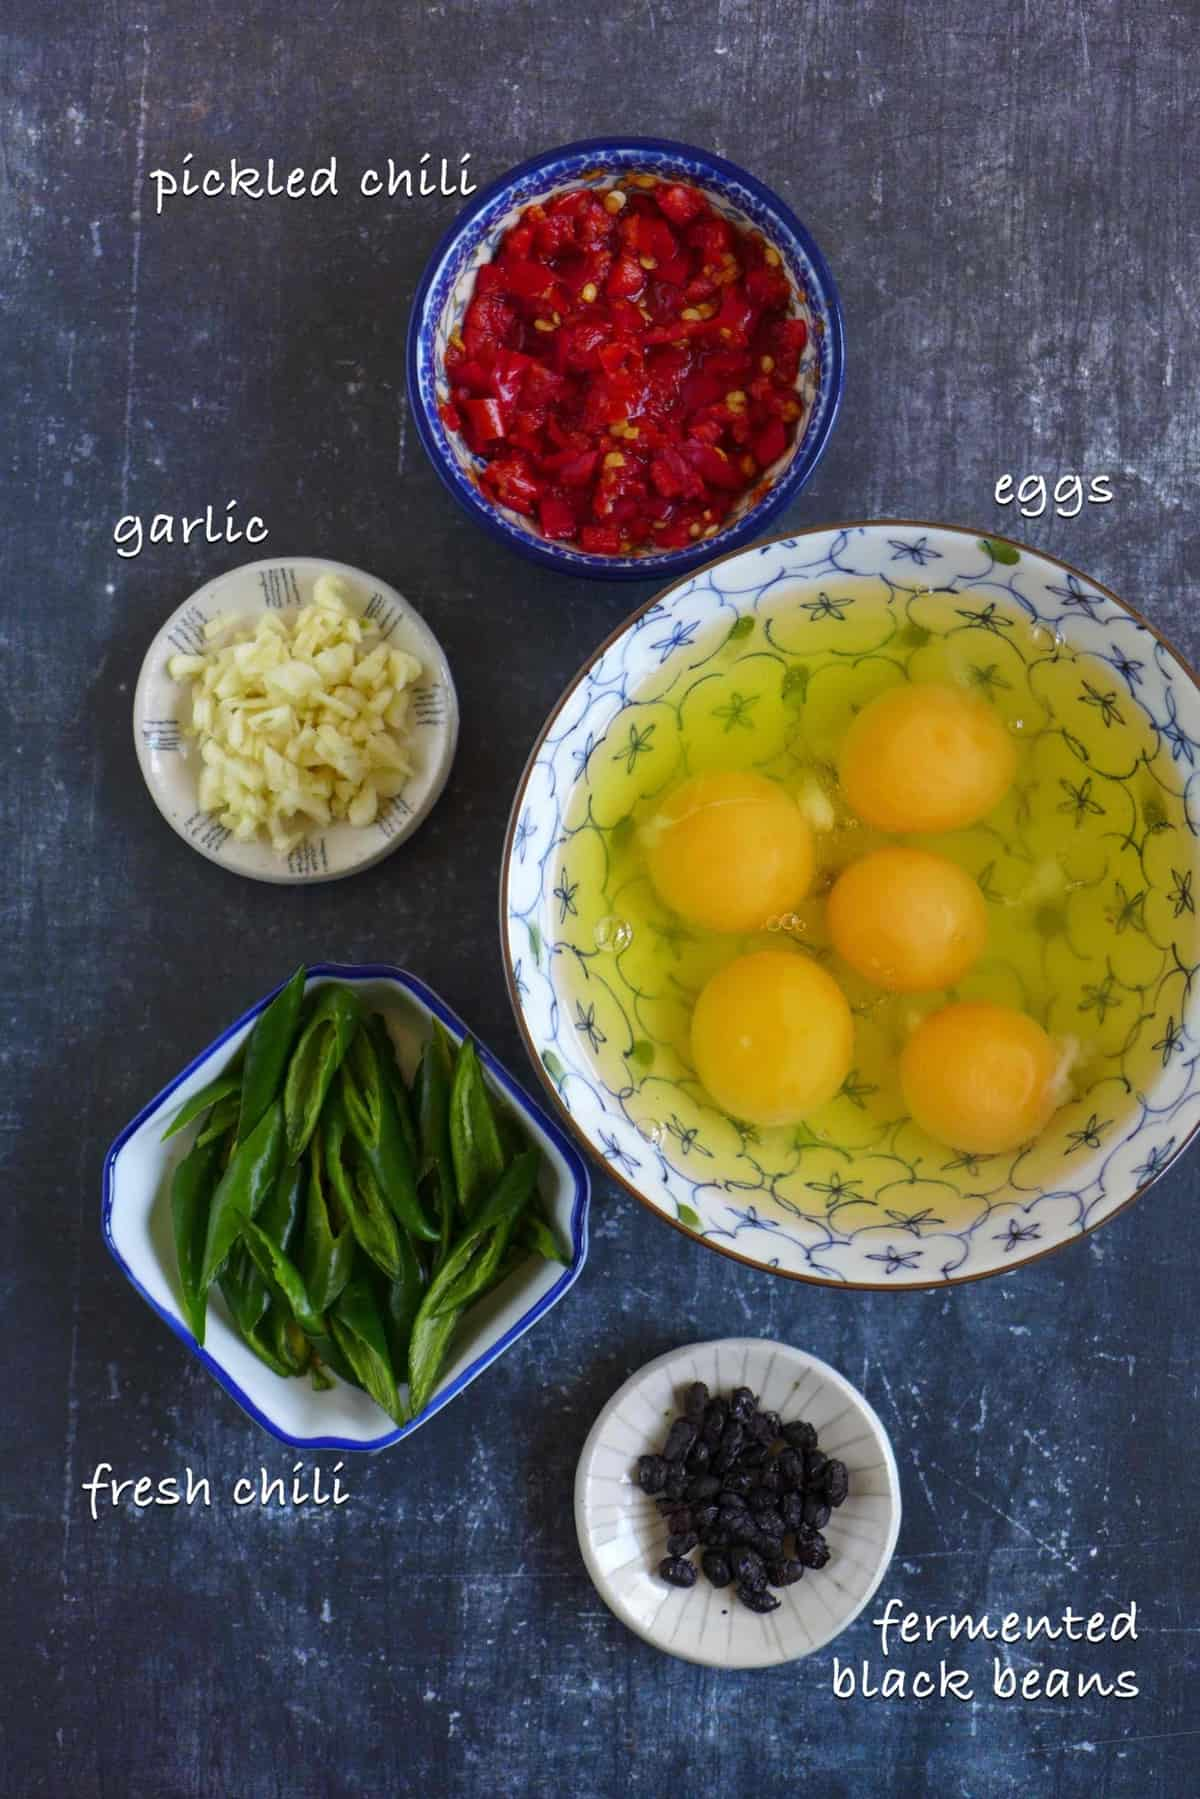 Raw ingredients for making egg and pickled chili stir-fry